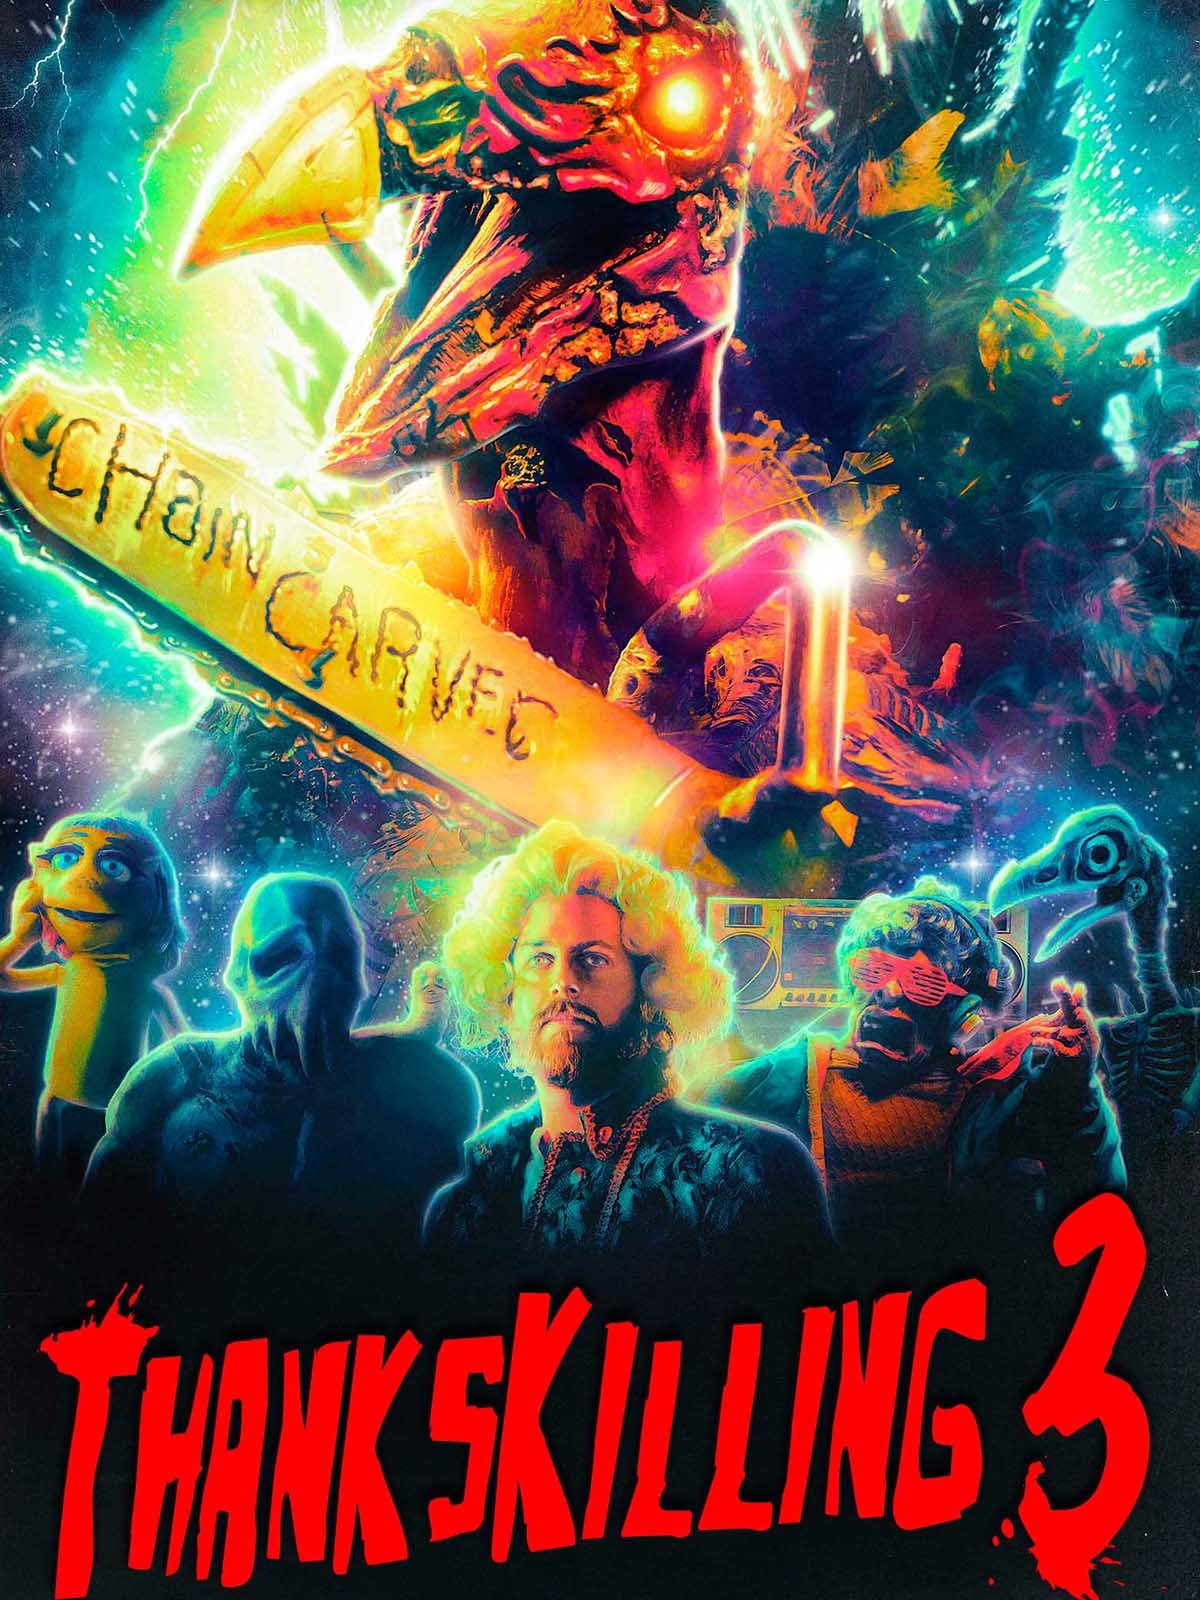 ThanksKilling 3 on Amazon Prime Video UK